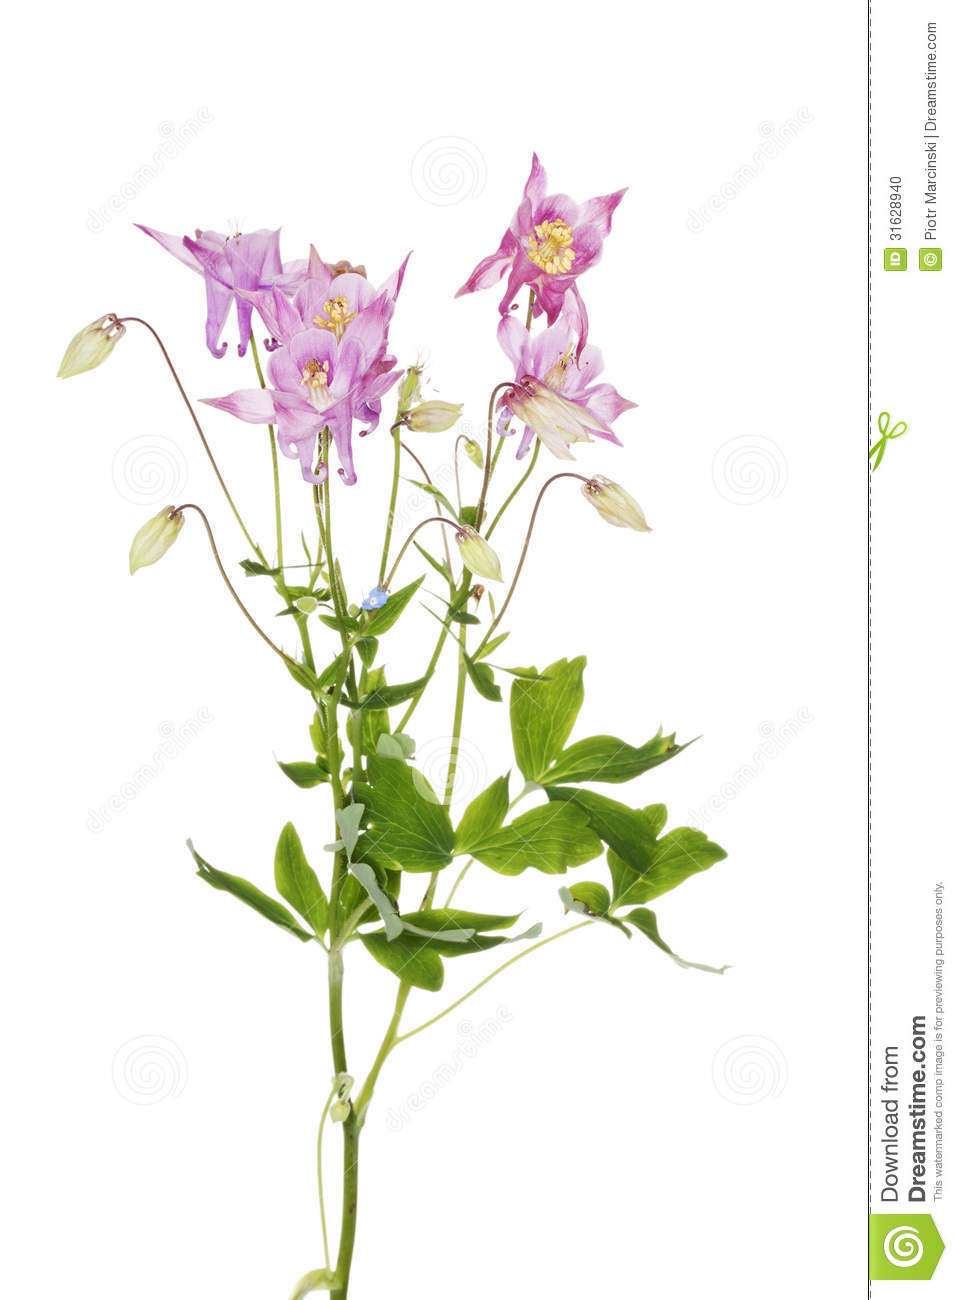 Aquilegia Vulgaris Stock Photo.